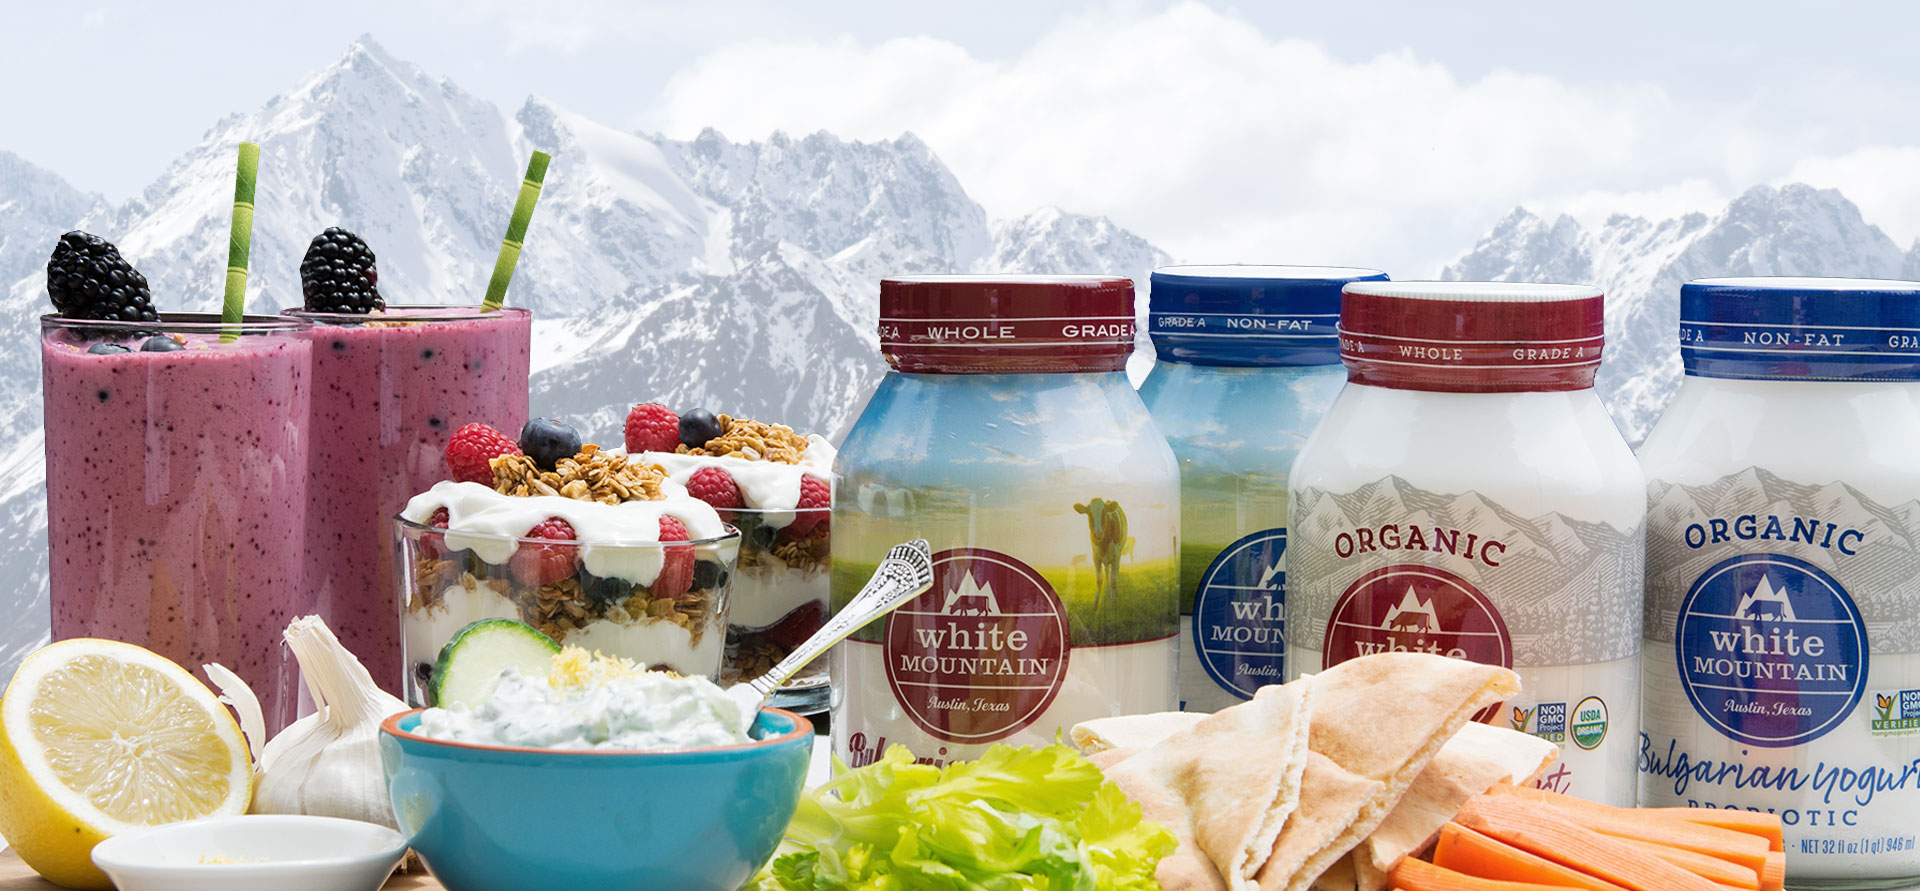 White Mountain Bulgarian Yogurt